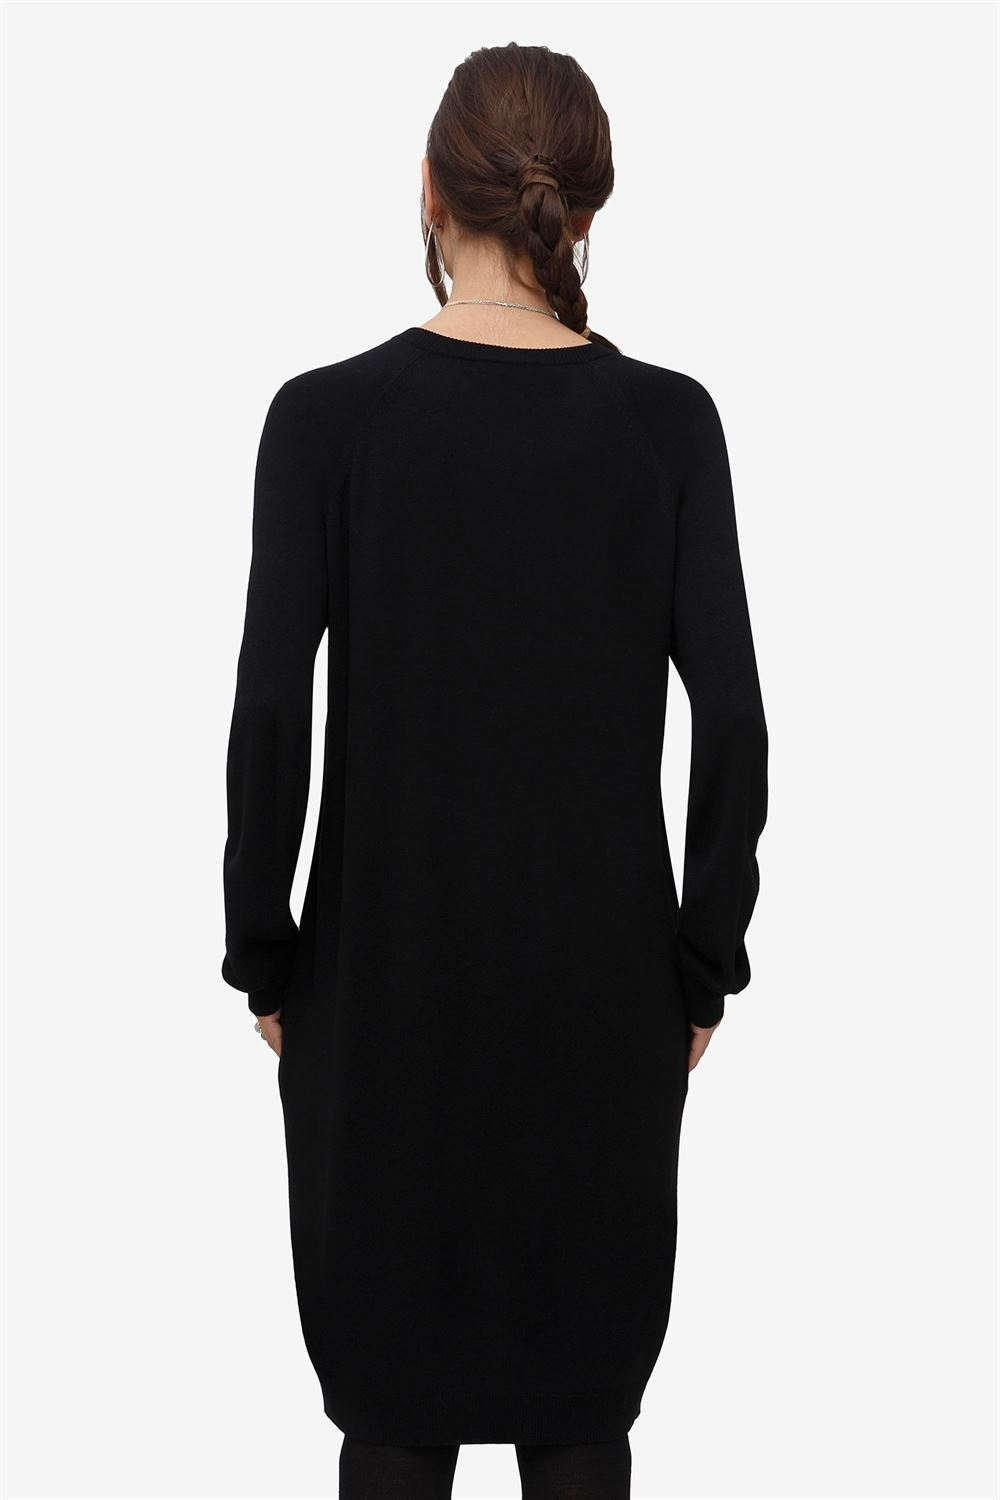 Black nursing dress with pockets and zipper nursing opening  - Seen from behind